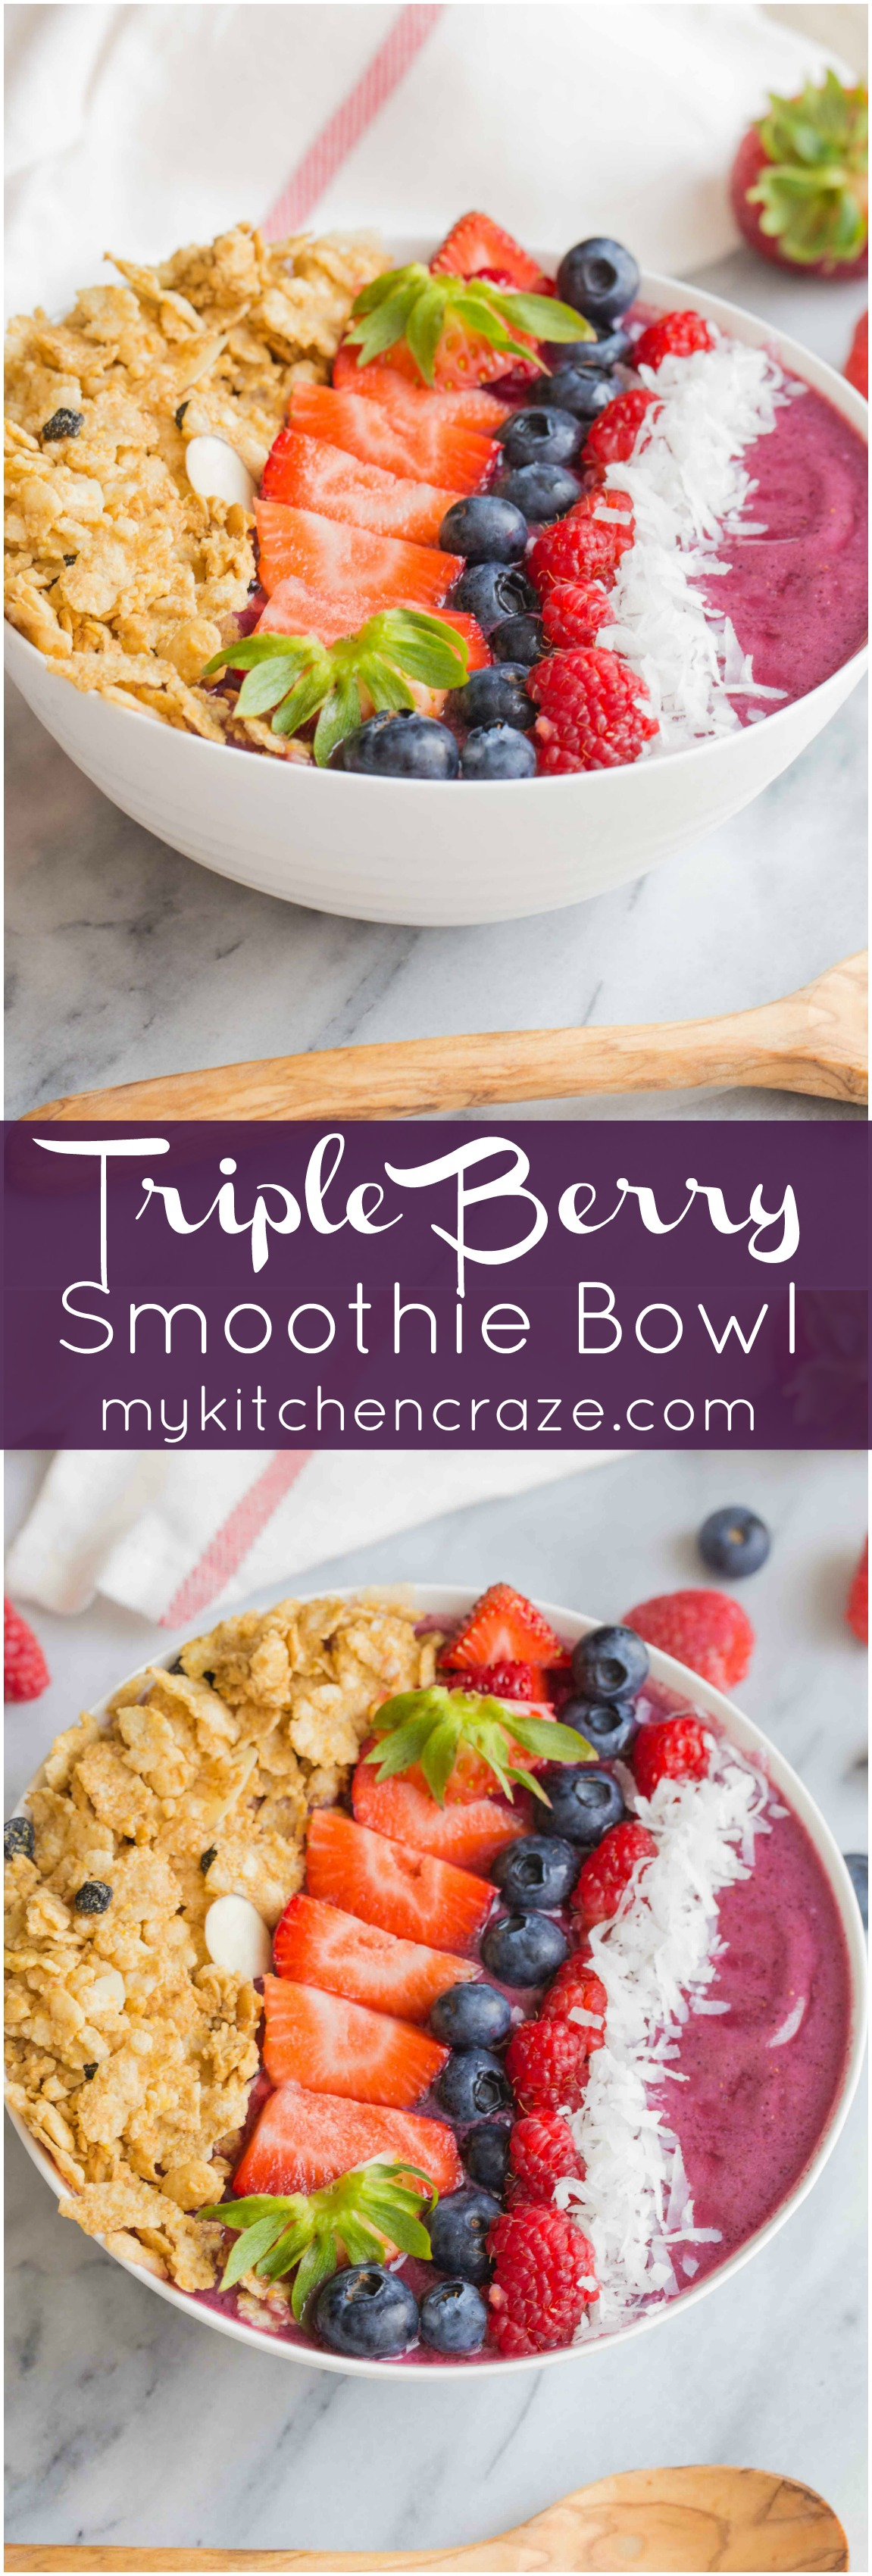 Triple Berry Smoothie Bowl ~ mykitchencraze.com ~ #CerealAnytime #ad